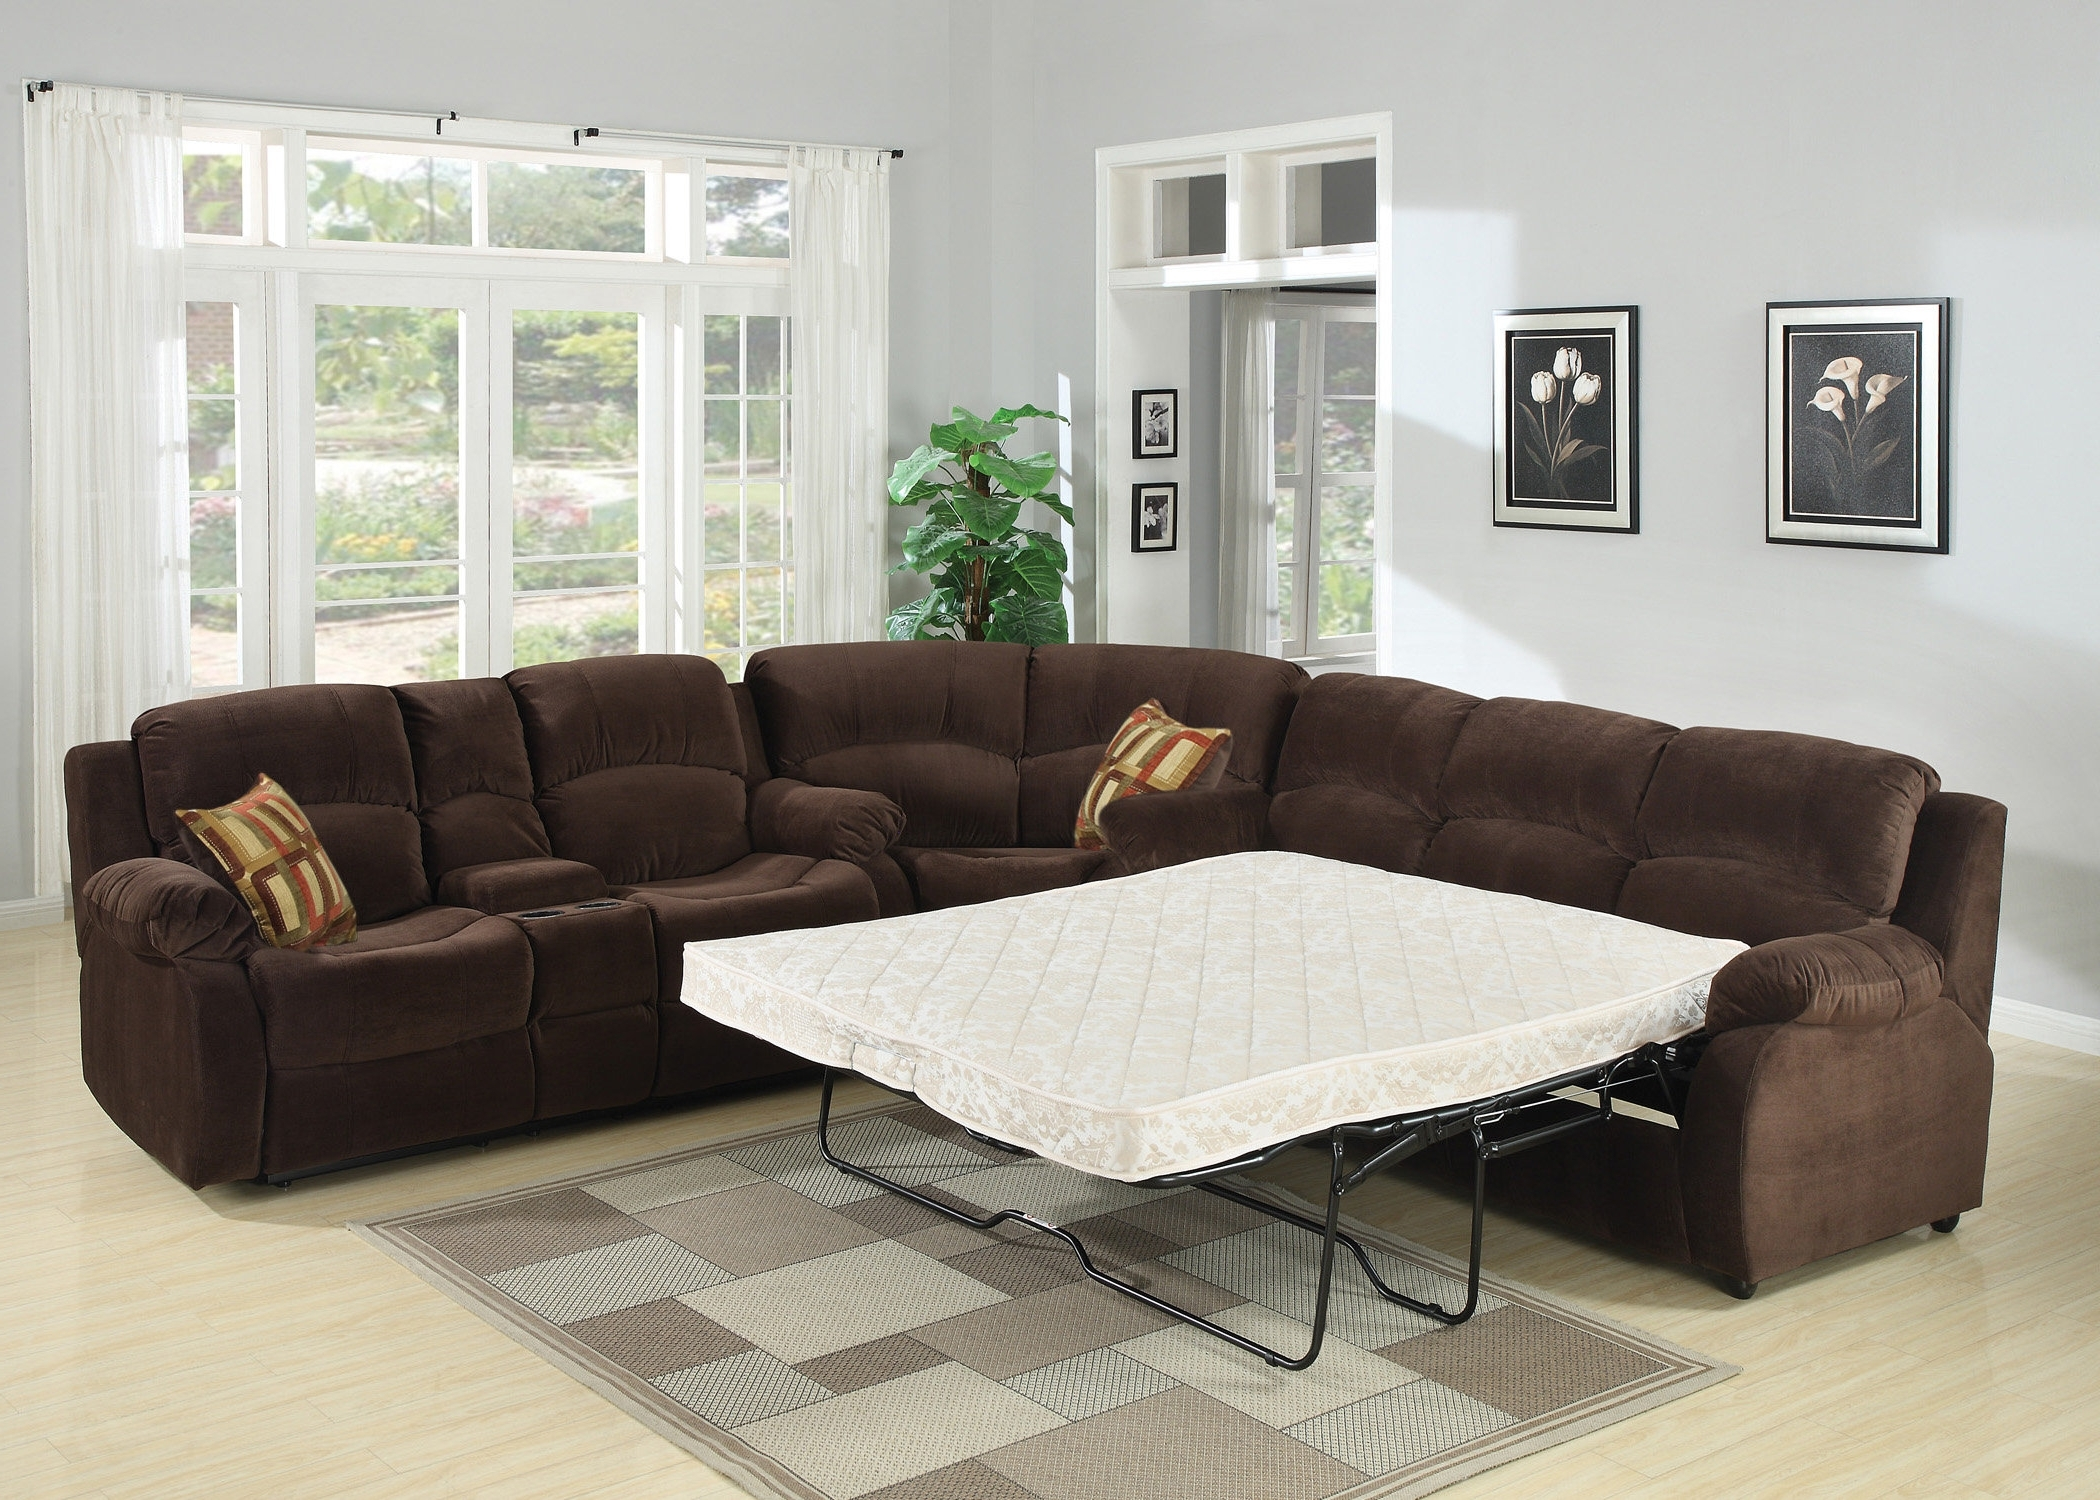 Popular Sleeper Sectional Sofas You'll Love (View 9 of 20)